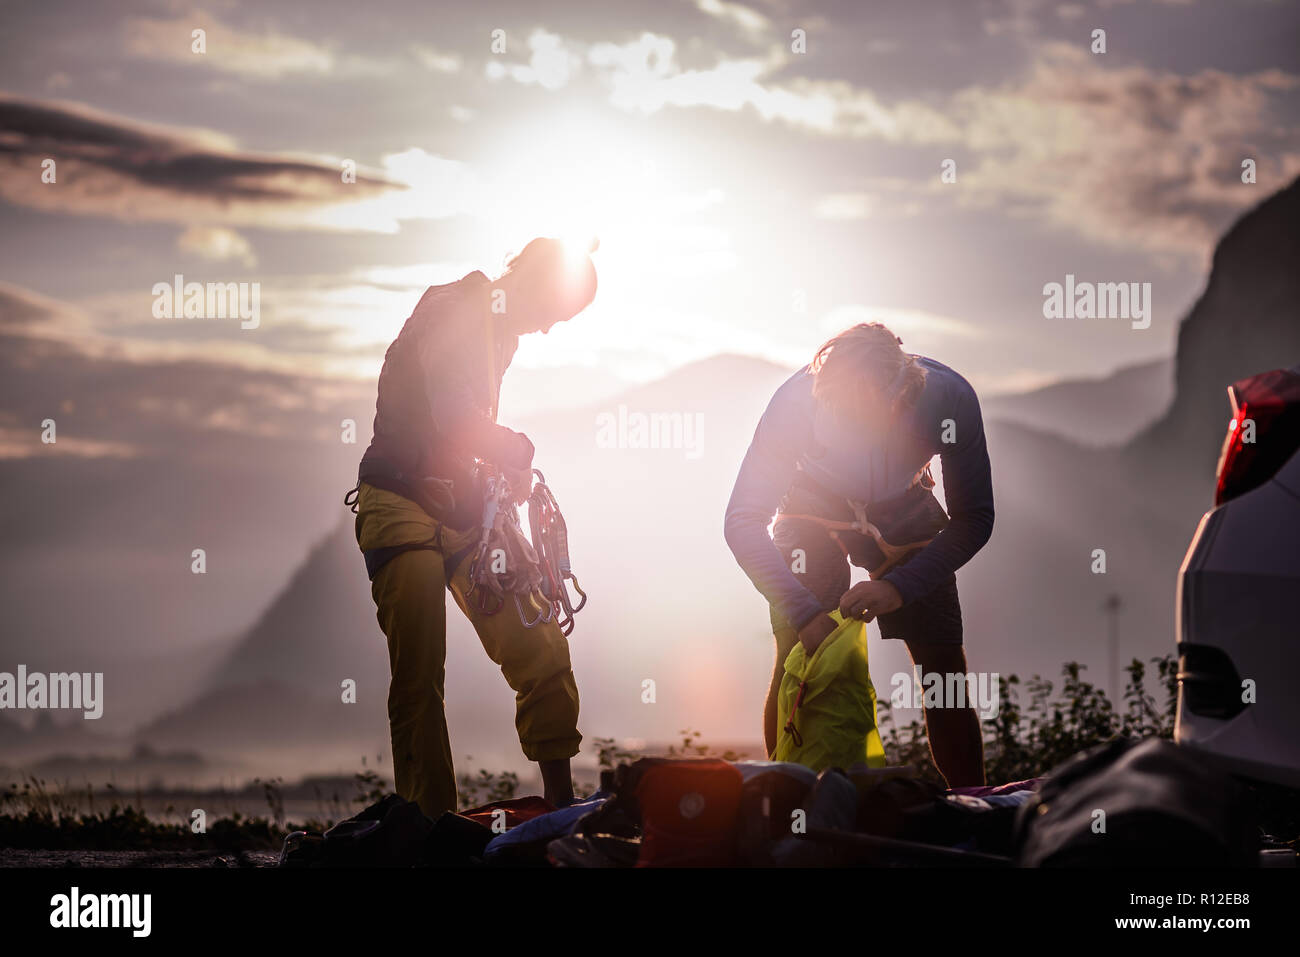 Friends on rock climbing trip, Squamish, Canada - Stock Image